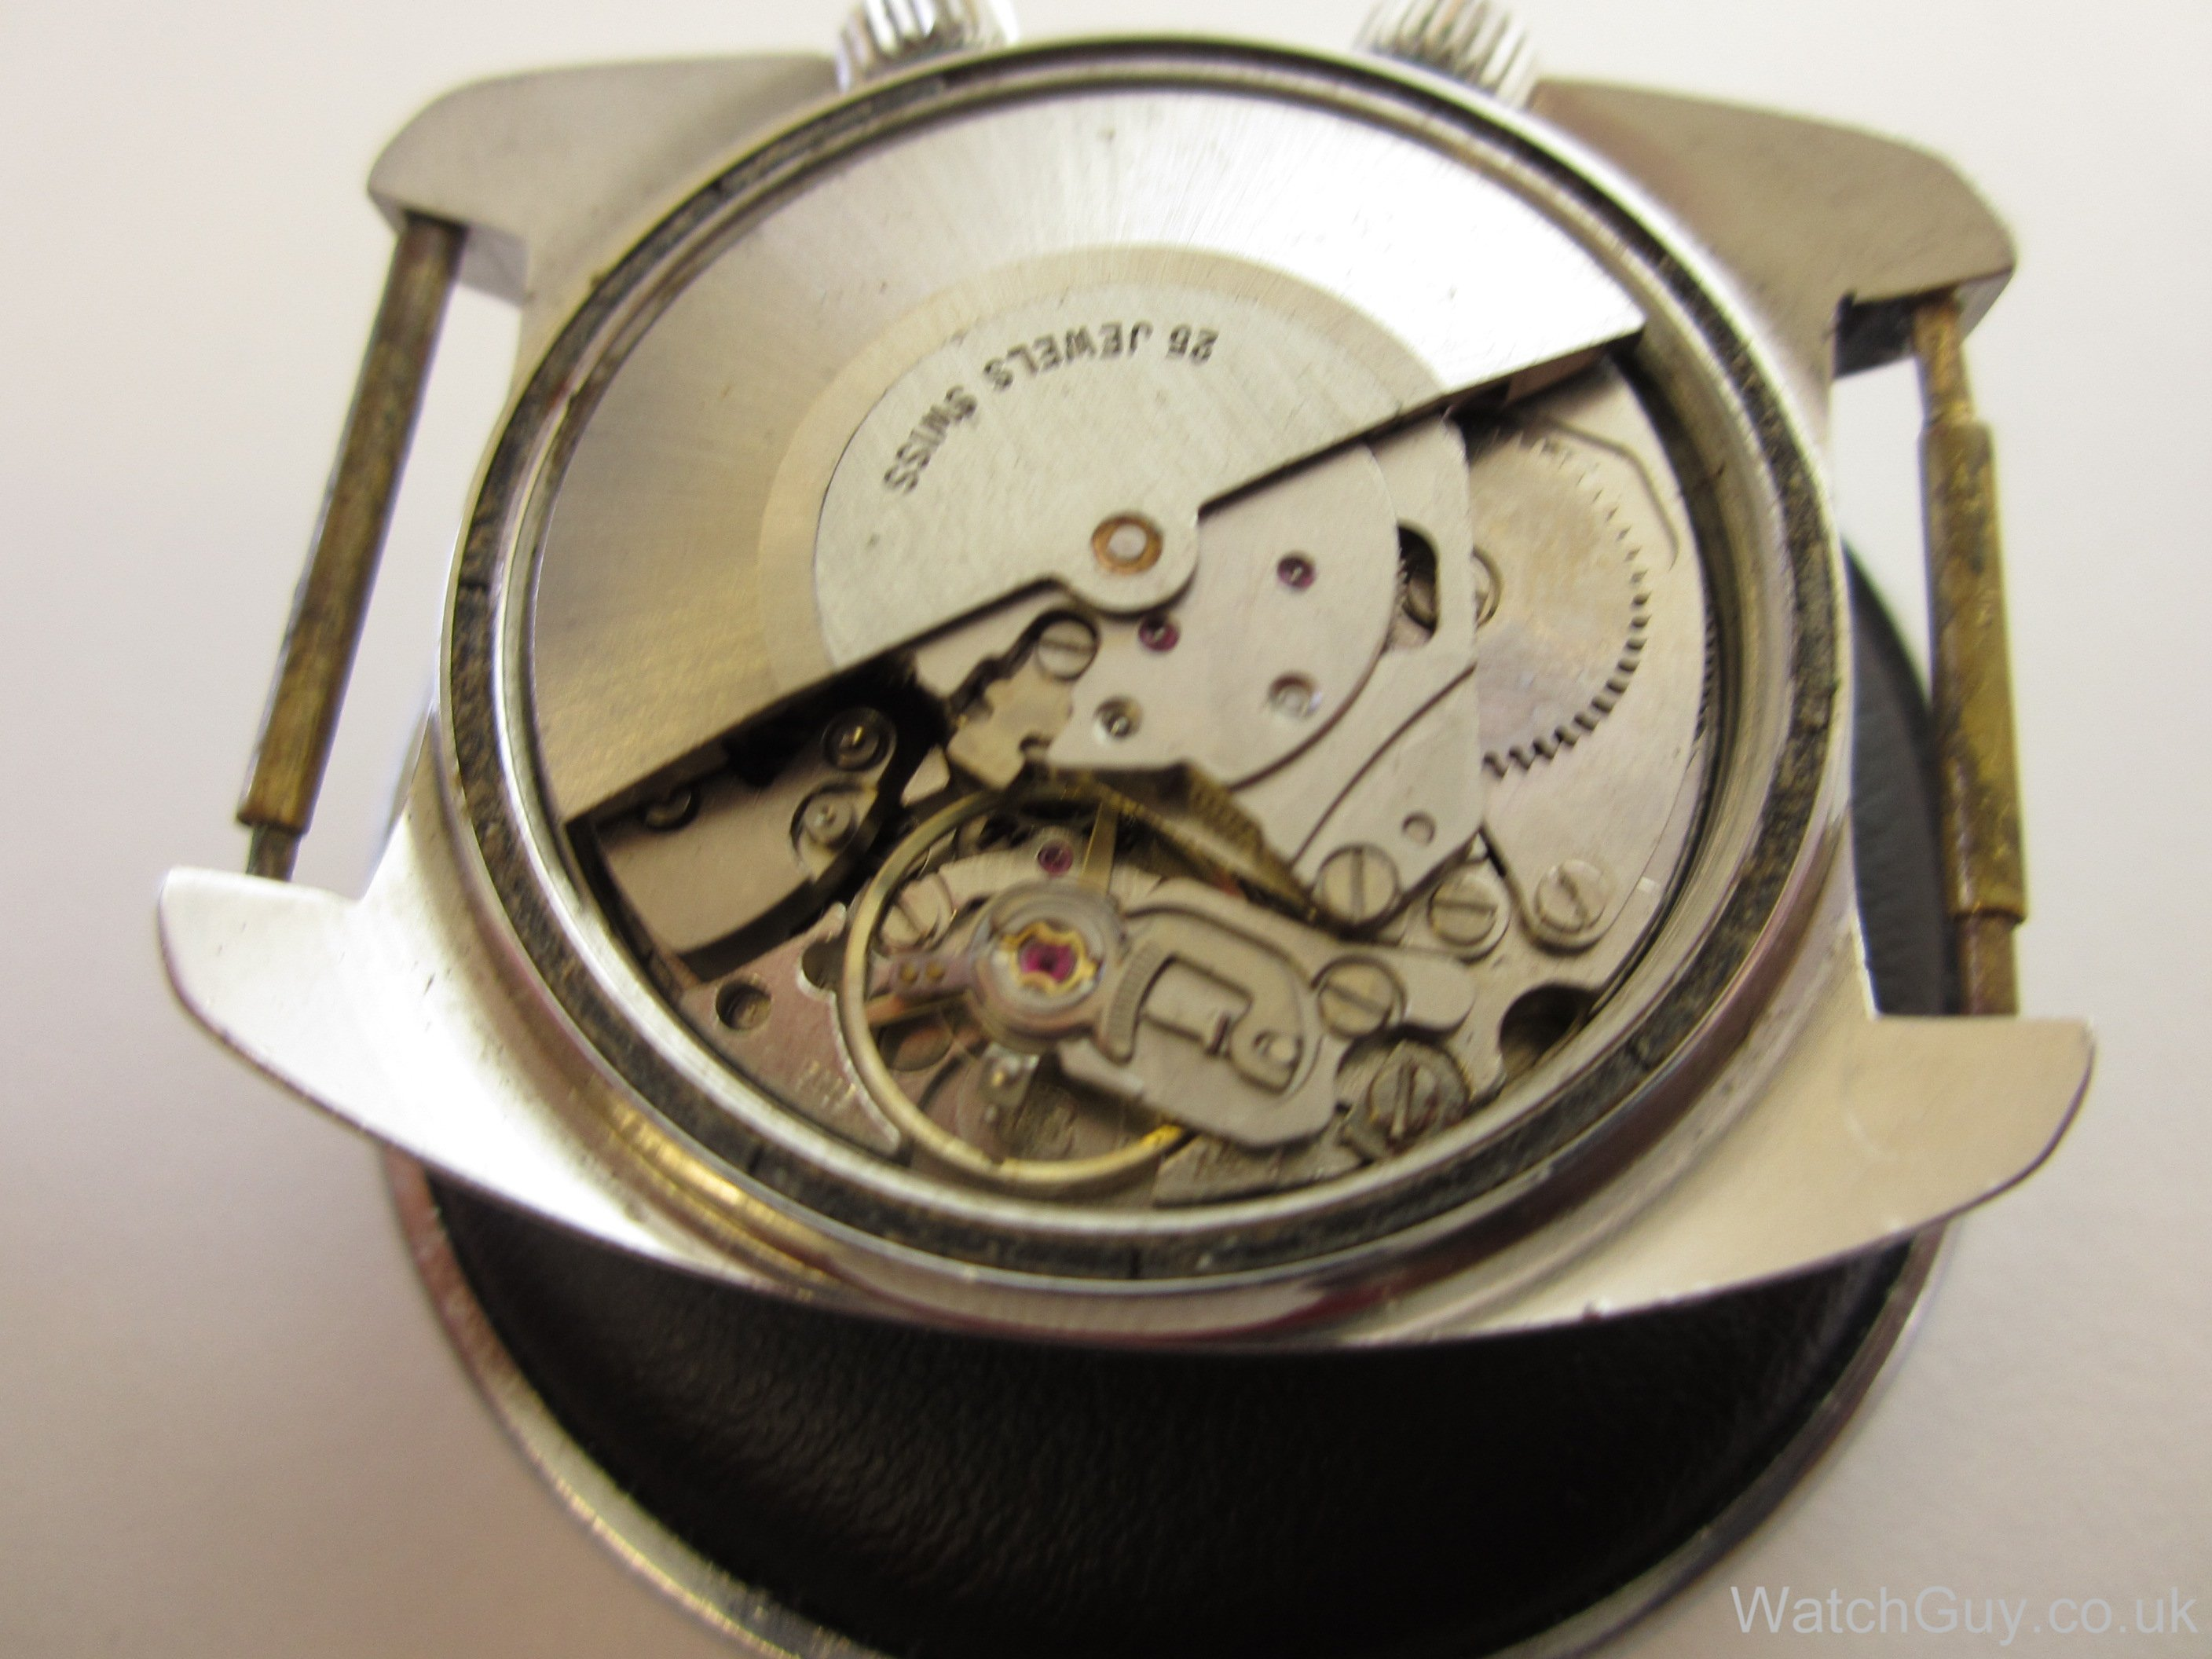 Repair of high-end watch movements